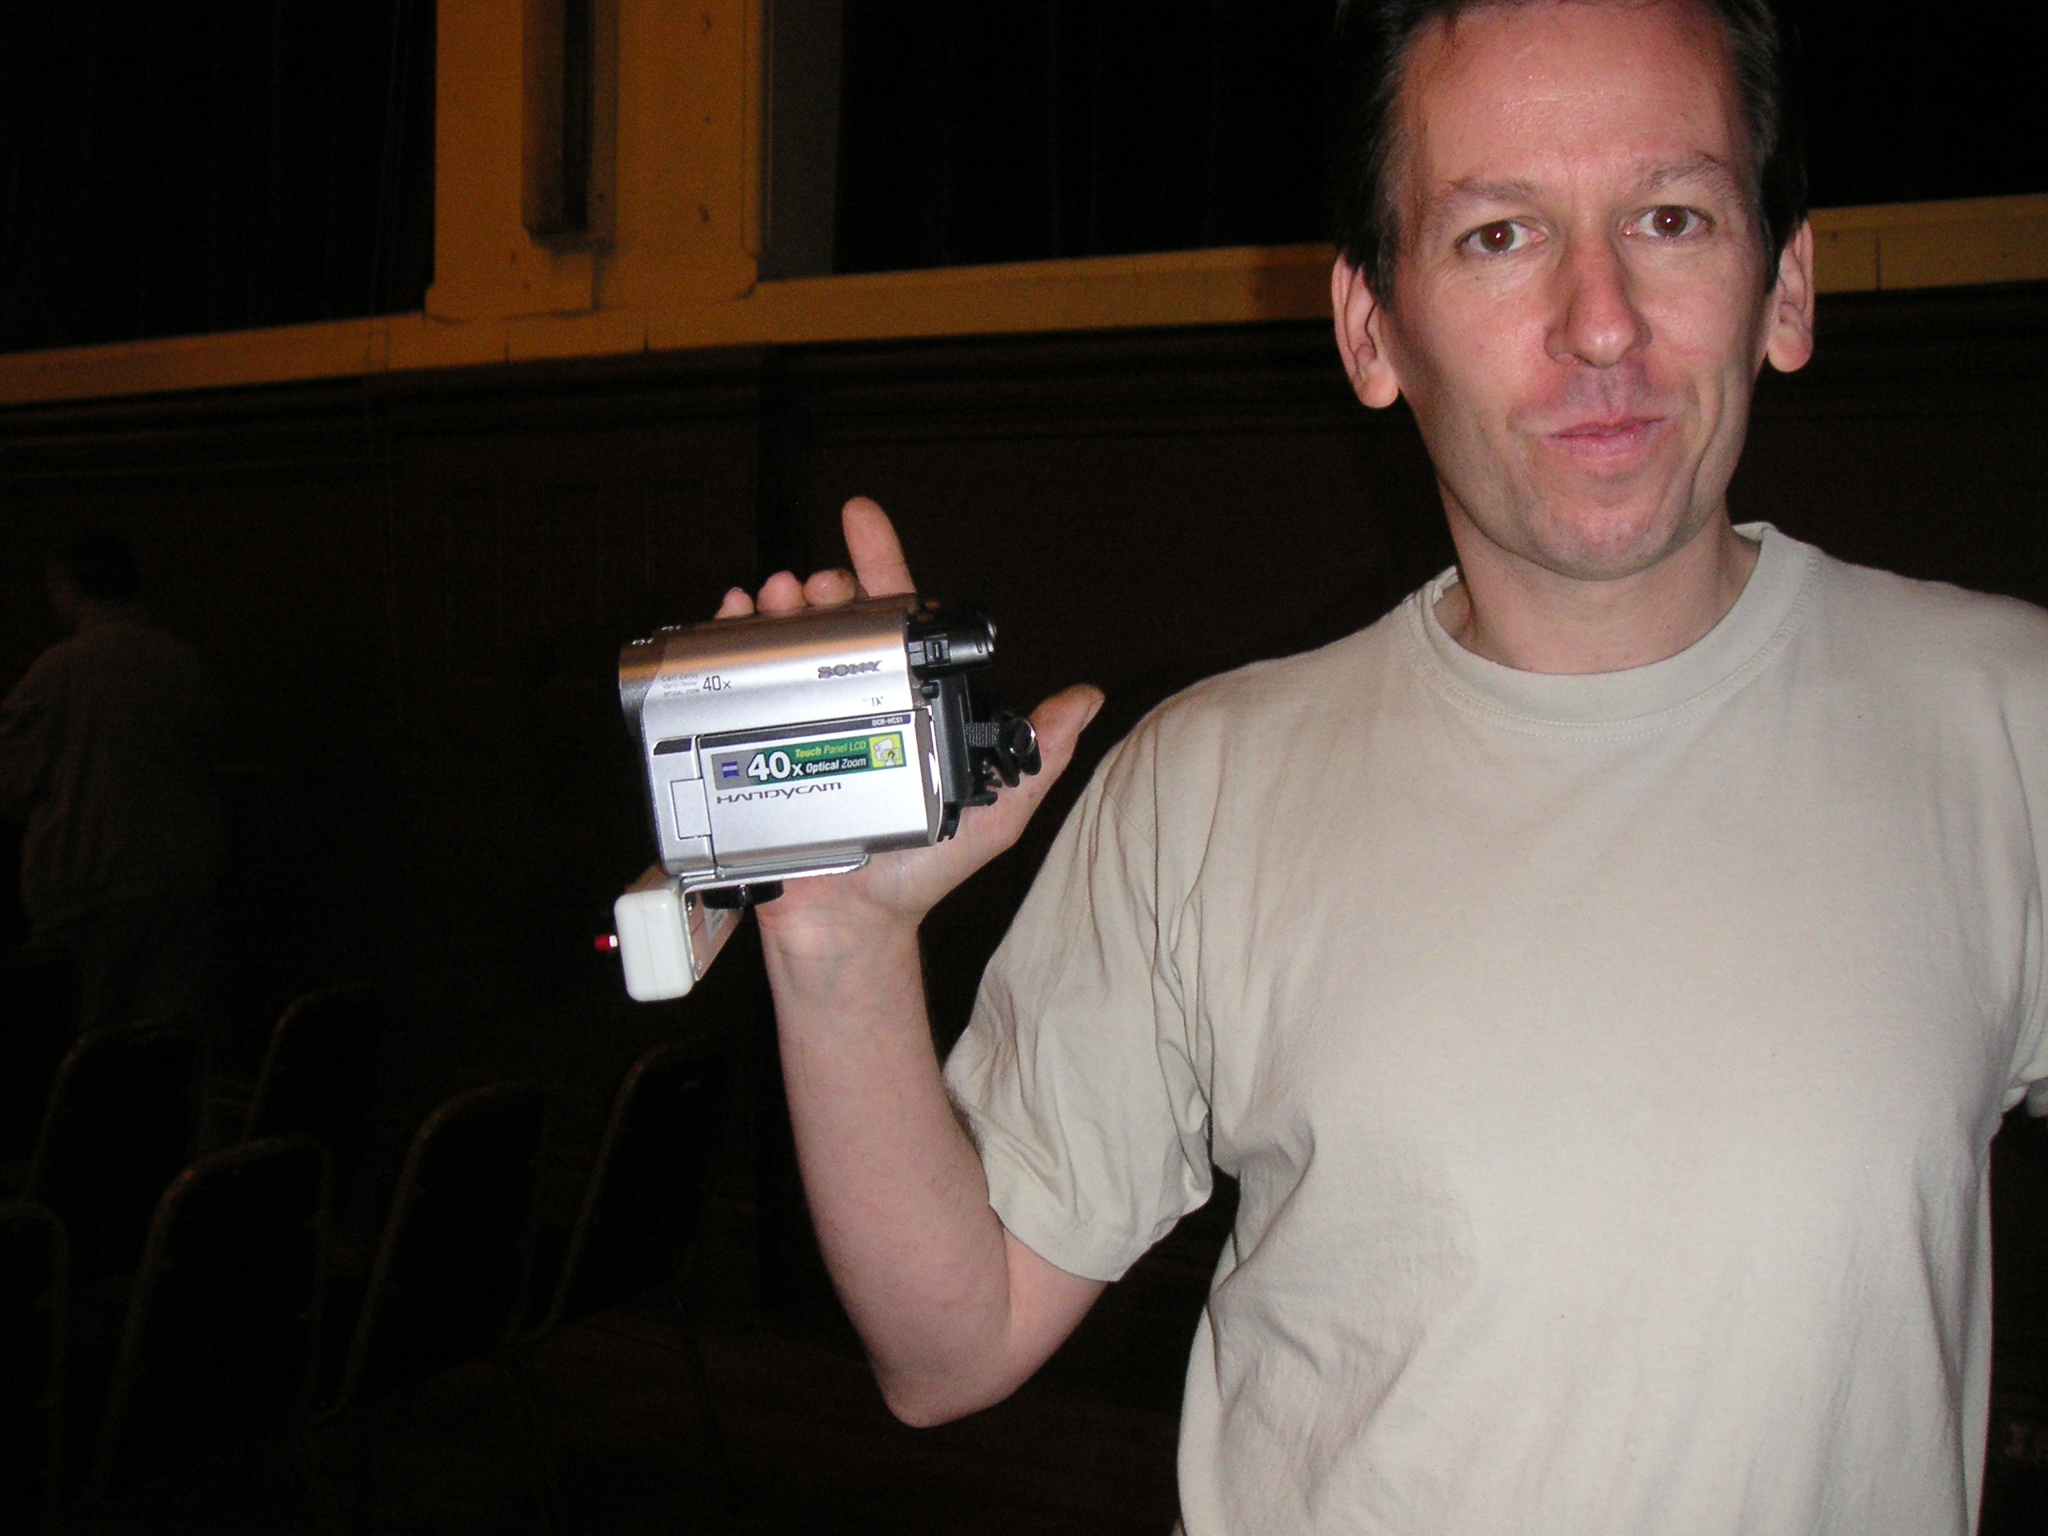 Tiv Paul Tivy With His 3D Video Rig